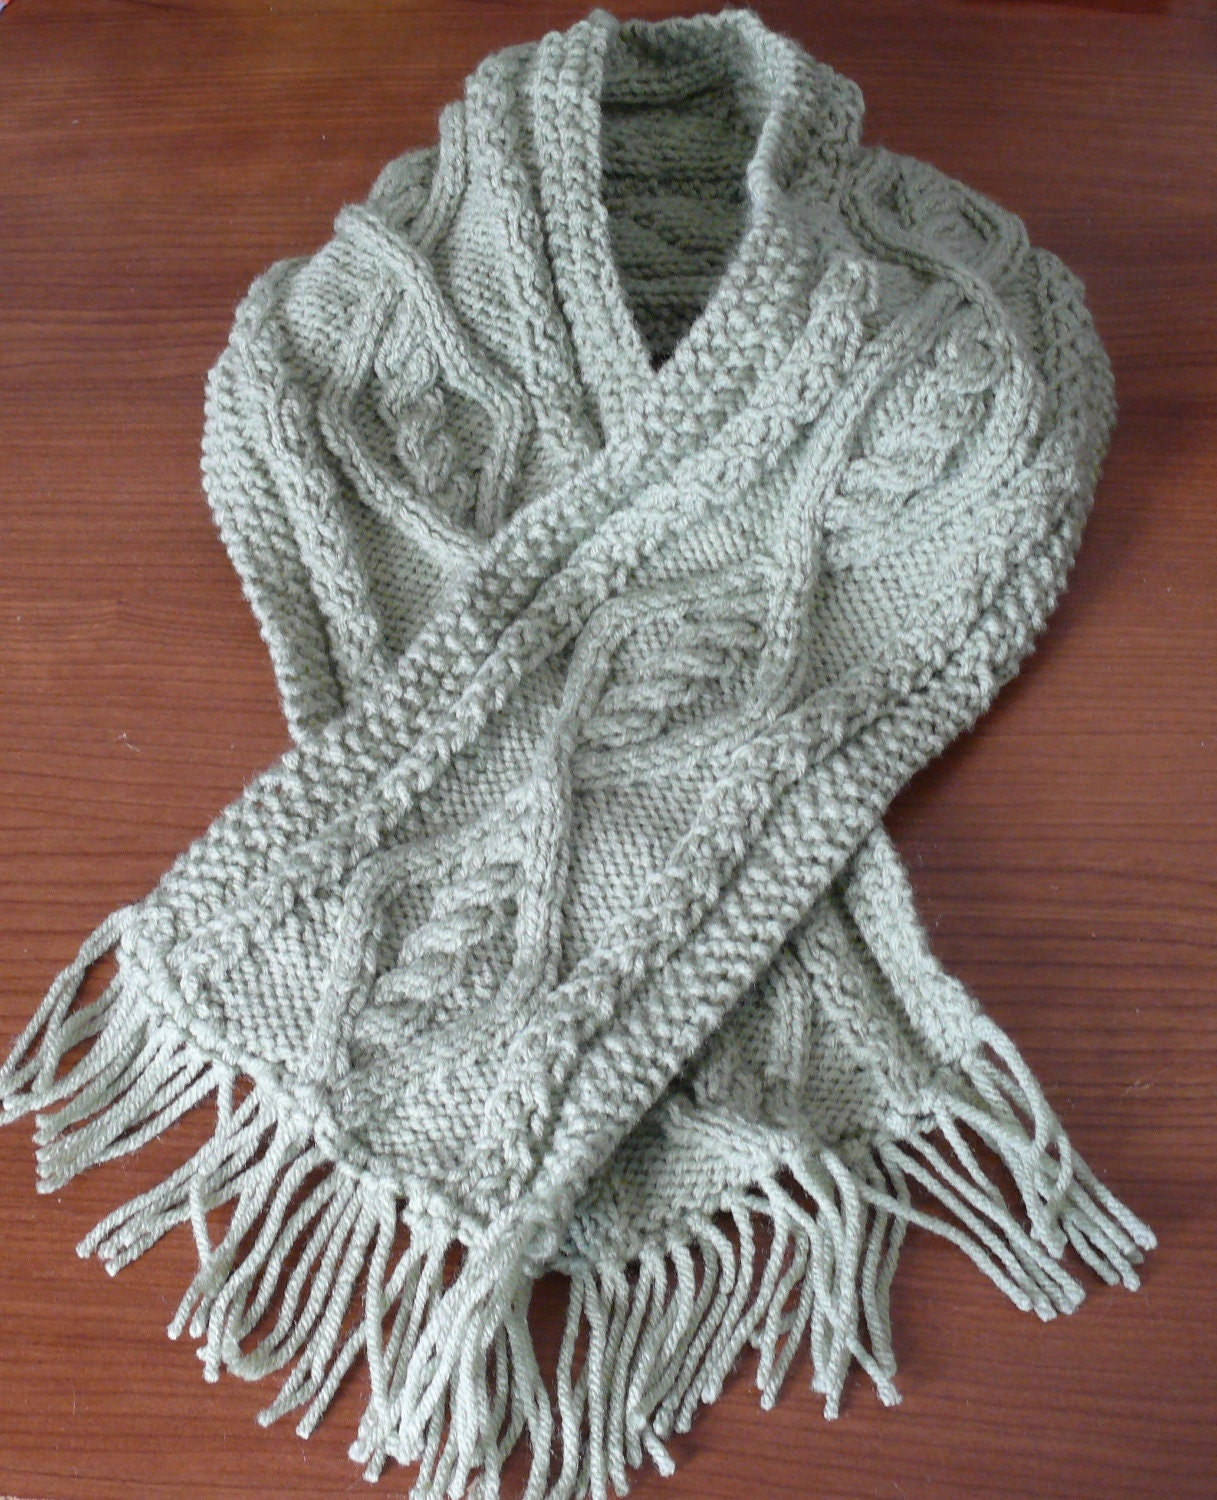 Aran Childrens Knitting Patterns : Items similar to Hand knitted Aran pattern childrens scarf - sage green ...